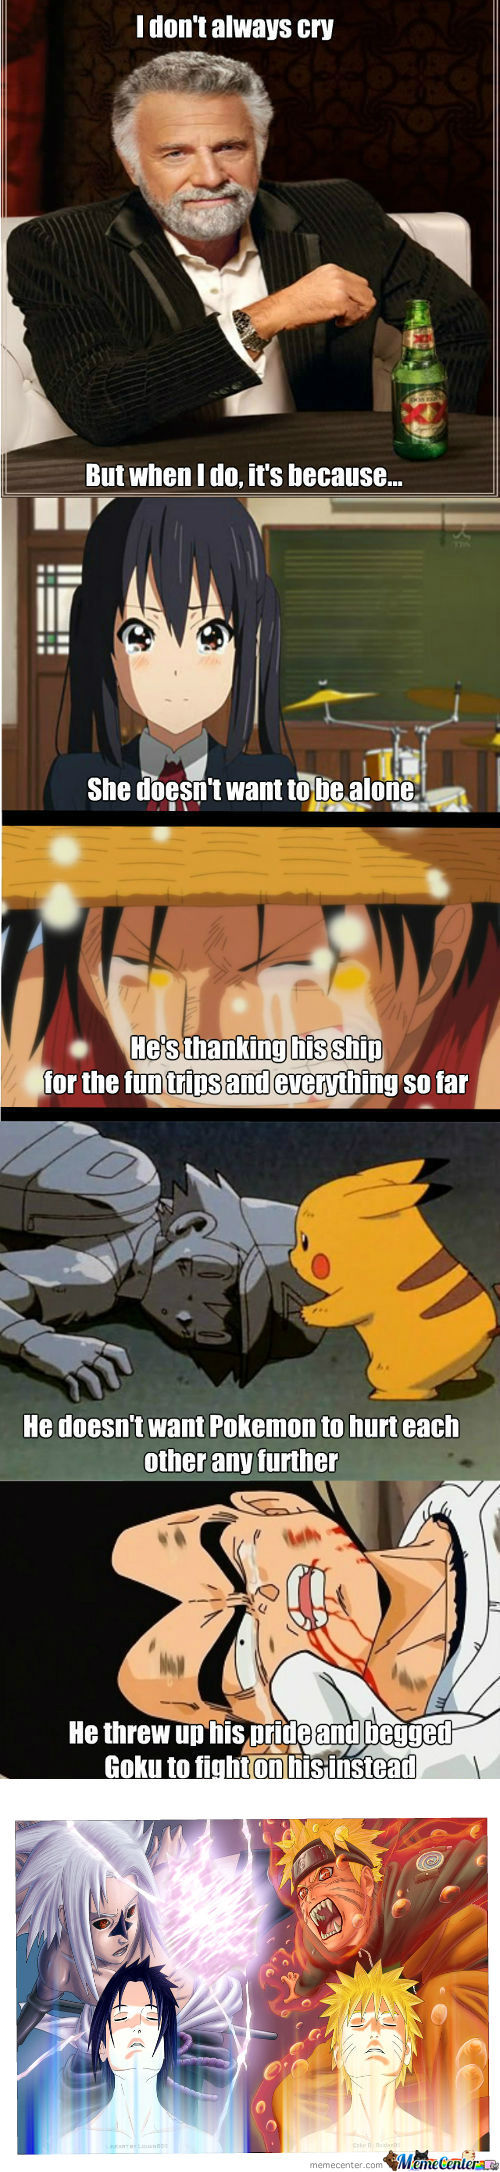 [RMX] Anime Is The Only Thing That Can Make A Real Man Cry!